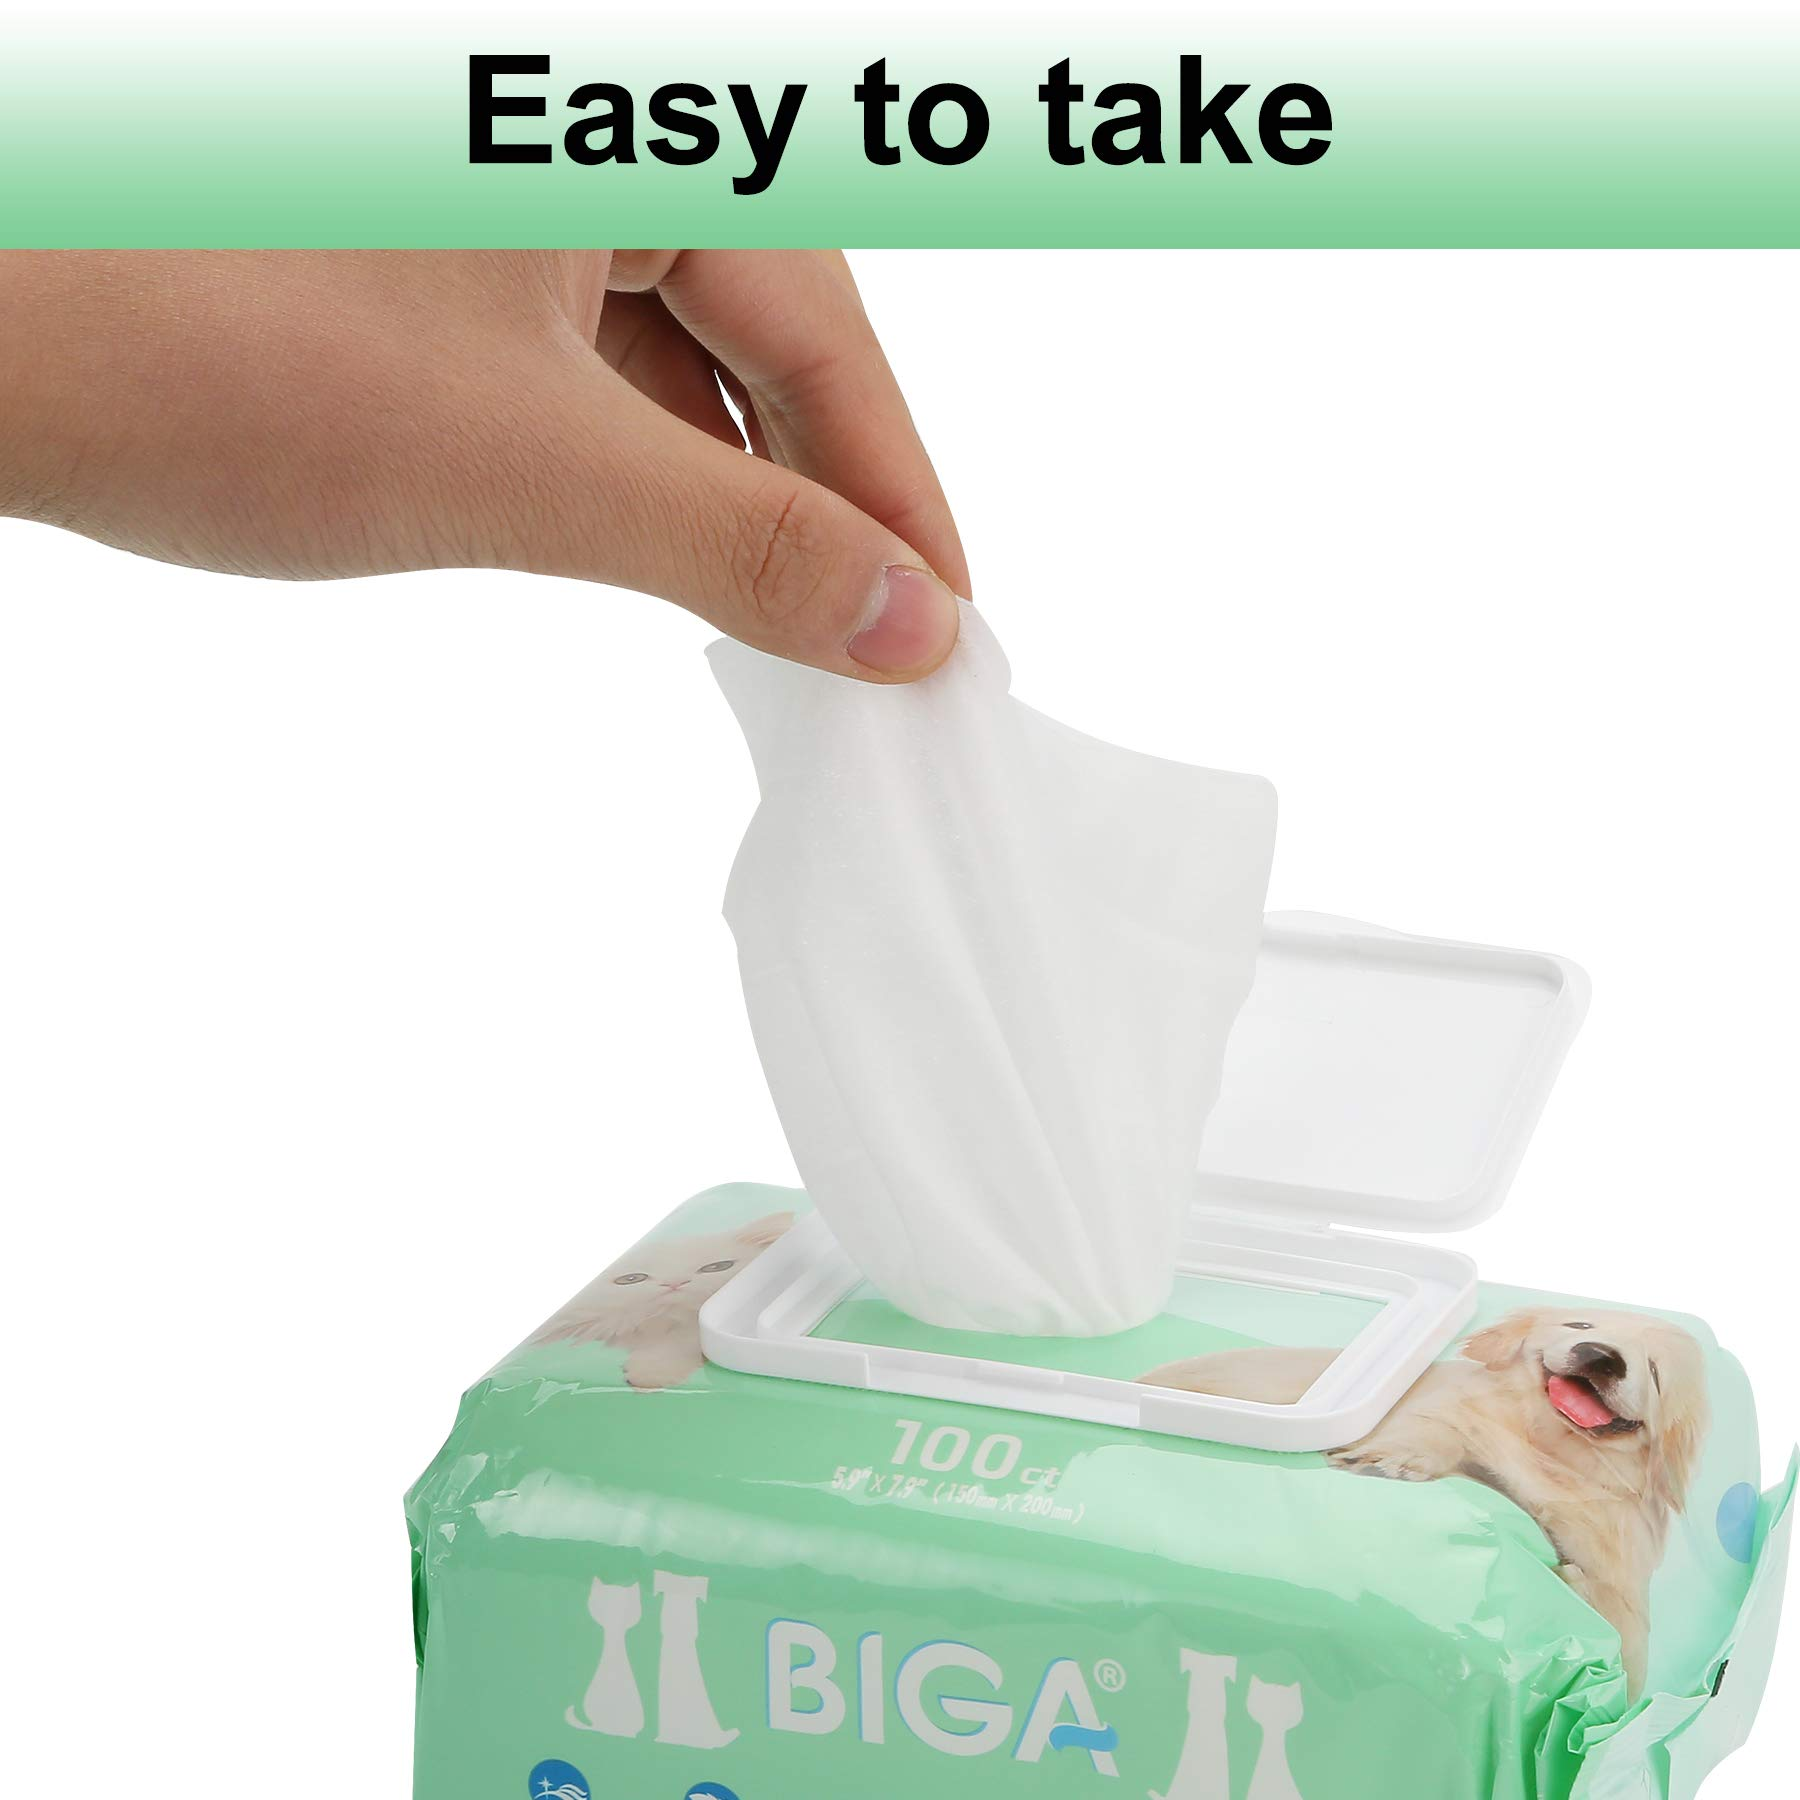 Deodorizing Hypoallergenic Pet Wipes with Fragrance Free Natural Organic and Antibacterial for Cleaning Face Butt Eyes Ears Paws Teeth 100ct per Pack (Aloe Vera 6 Pack) by BIGA (Image #6)